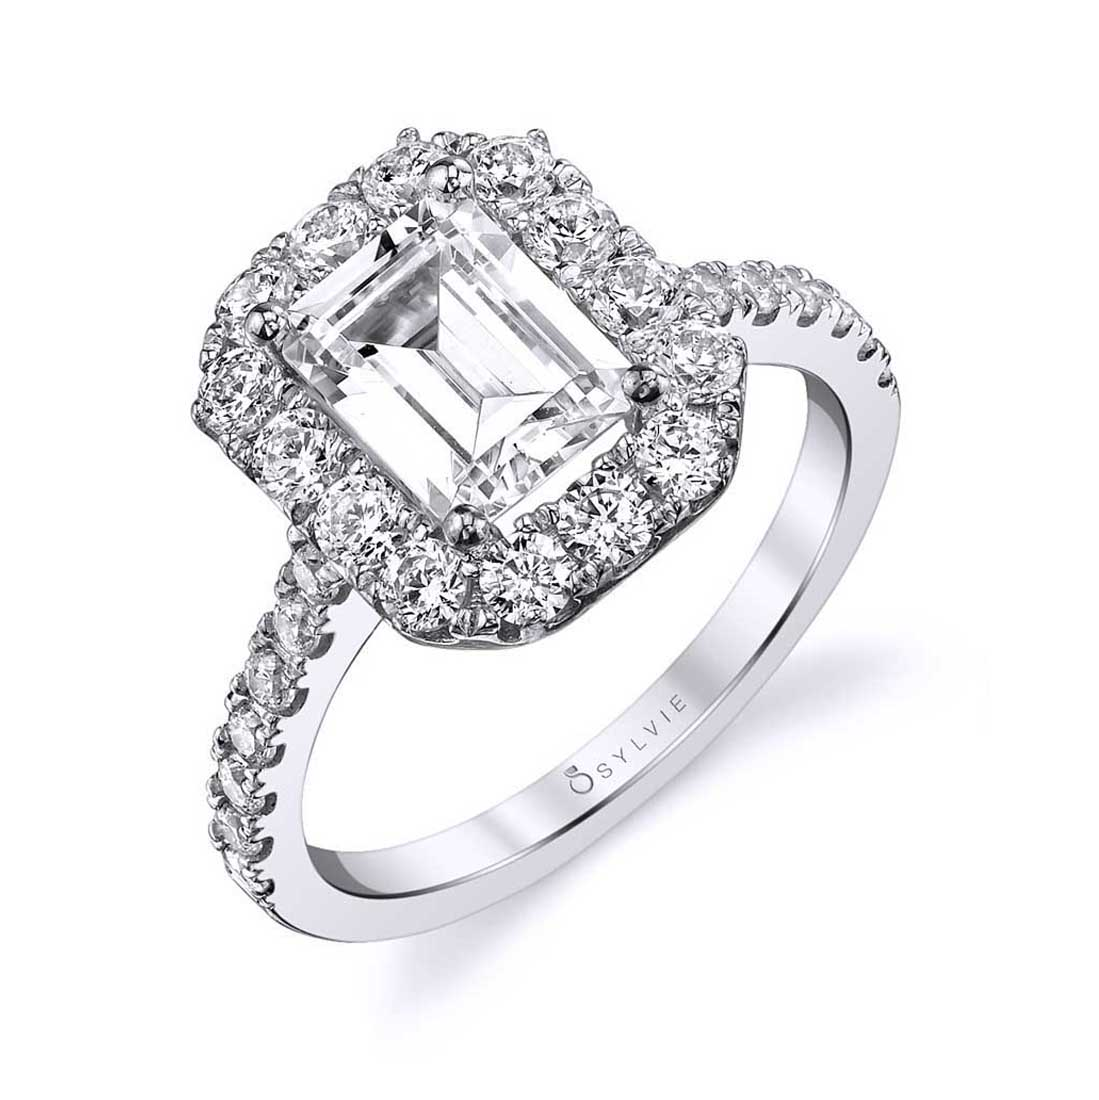 Profile Image of an Emerald Cut Engagement Ring with halo